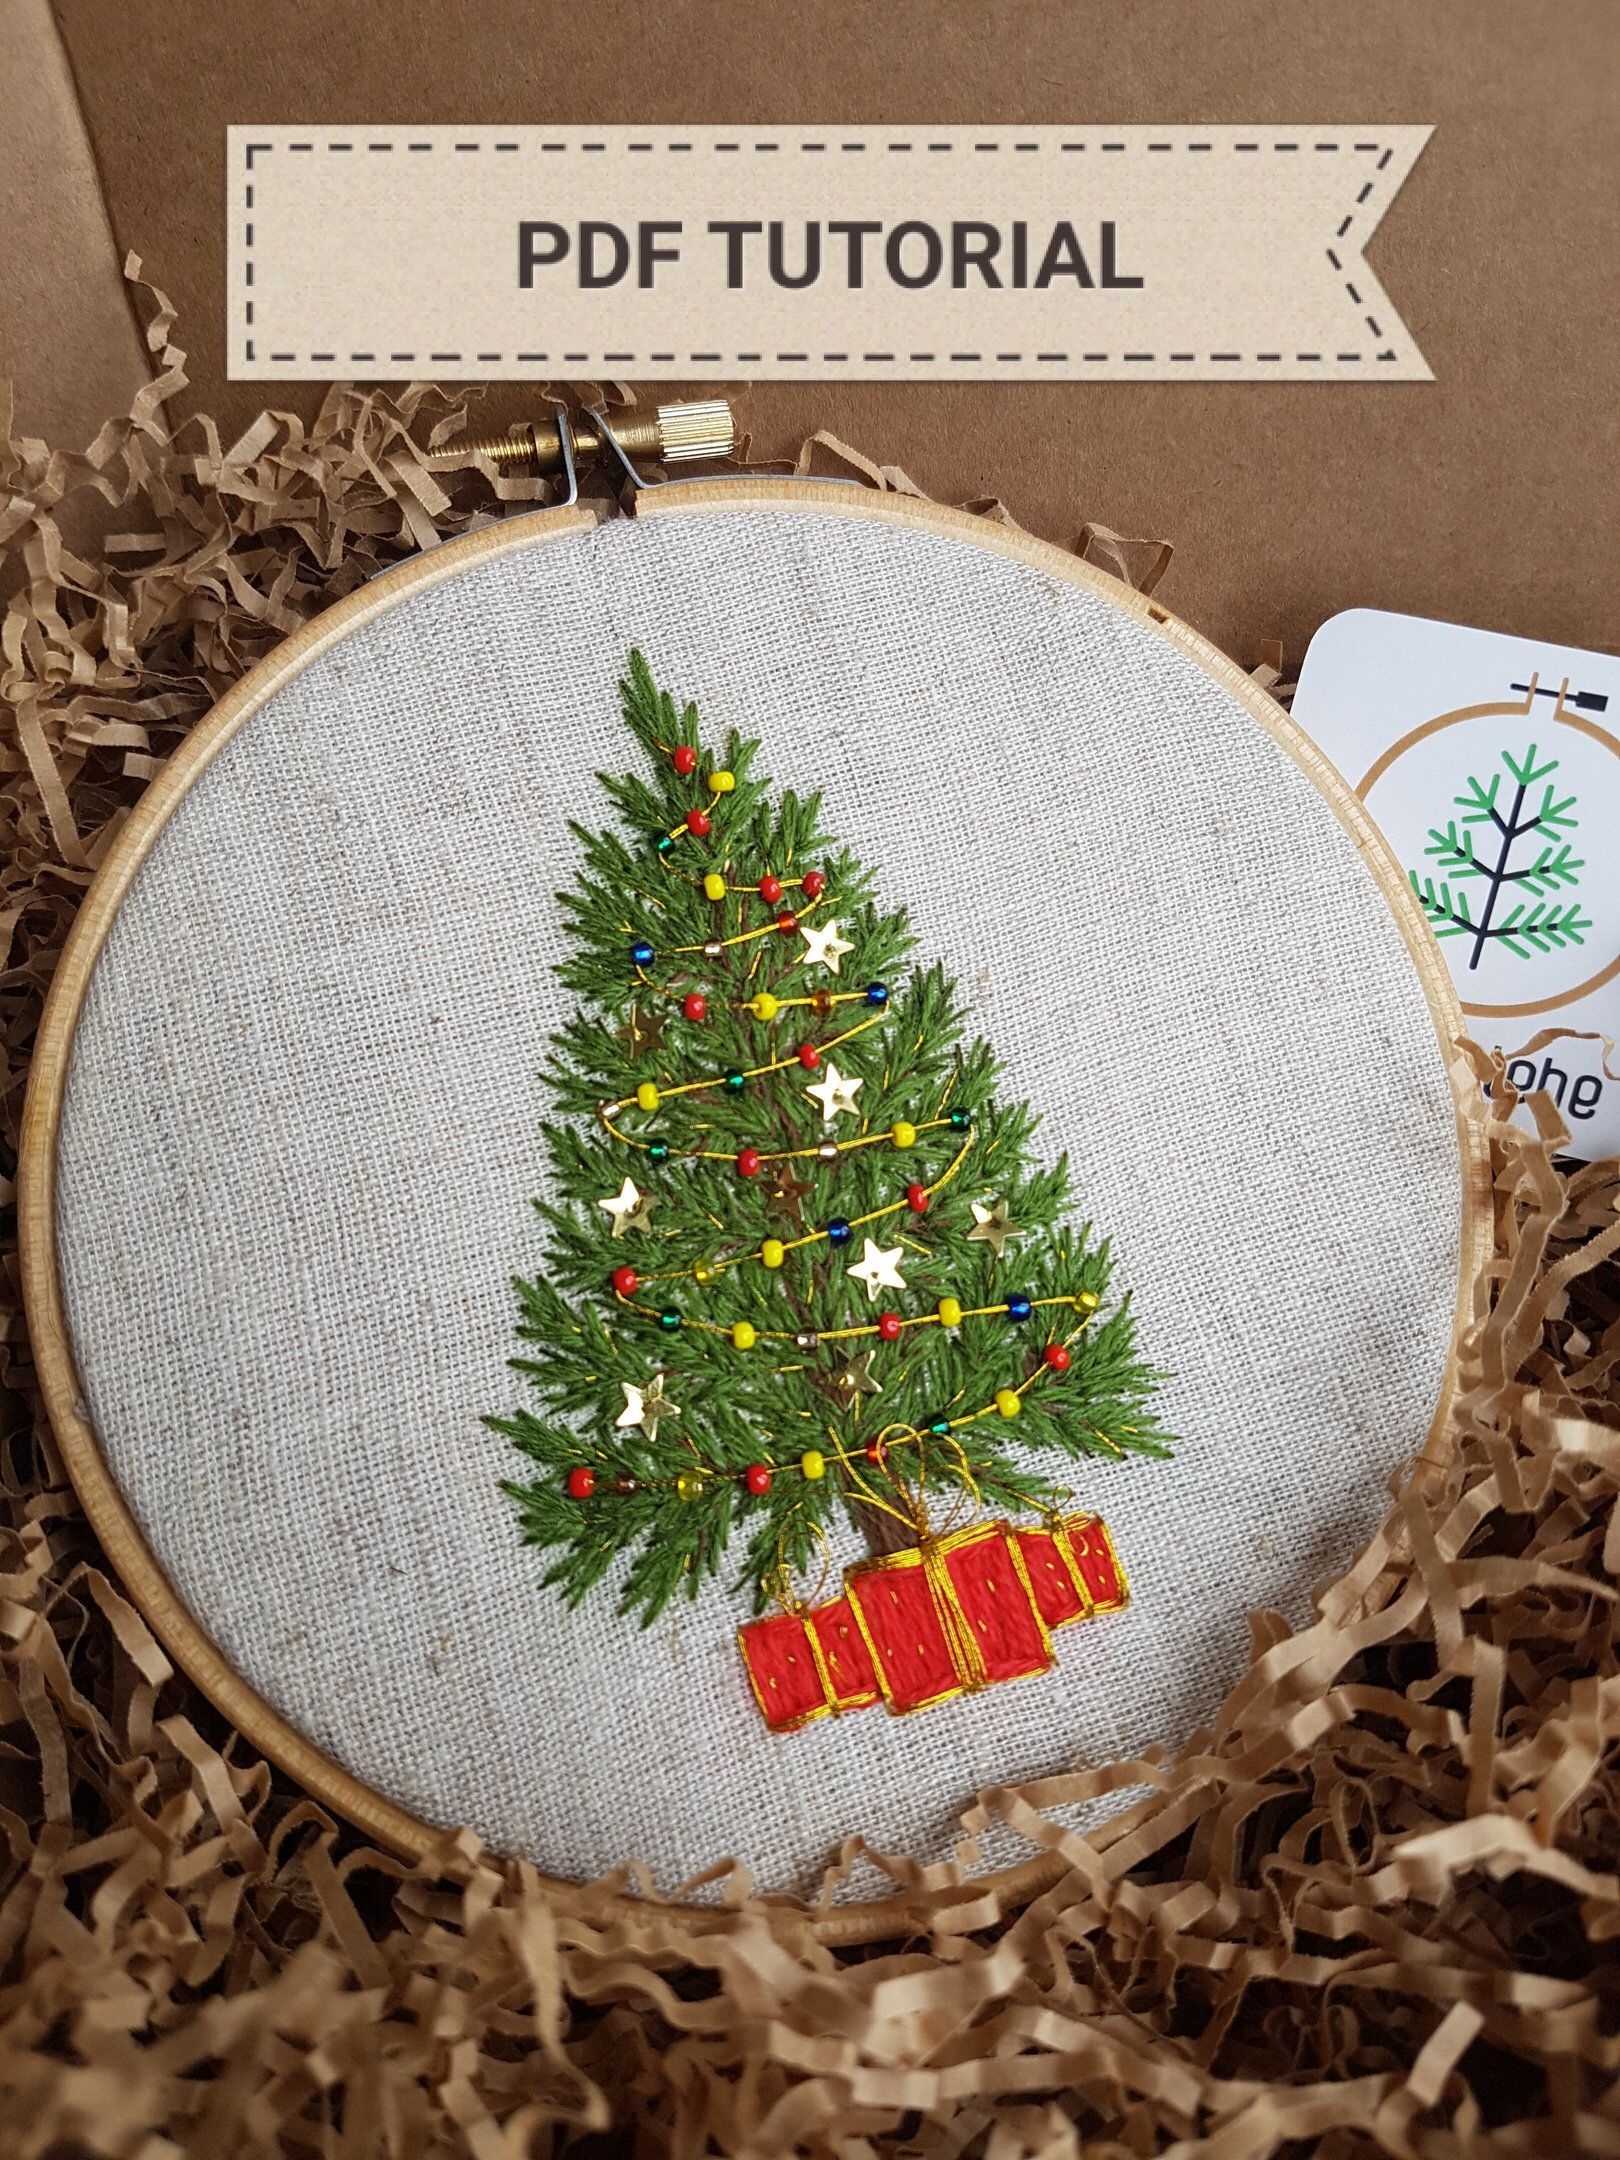 Christmas Tree Pattern Embroidery Pattern Christmas Embroidery Christmas Ornaments Christmas Gift Christmas Designs Christmas Decor Christmas Embroidery Patterns Christmas Embroidery Designs Christmas Embroidery